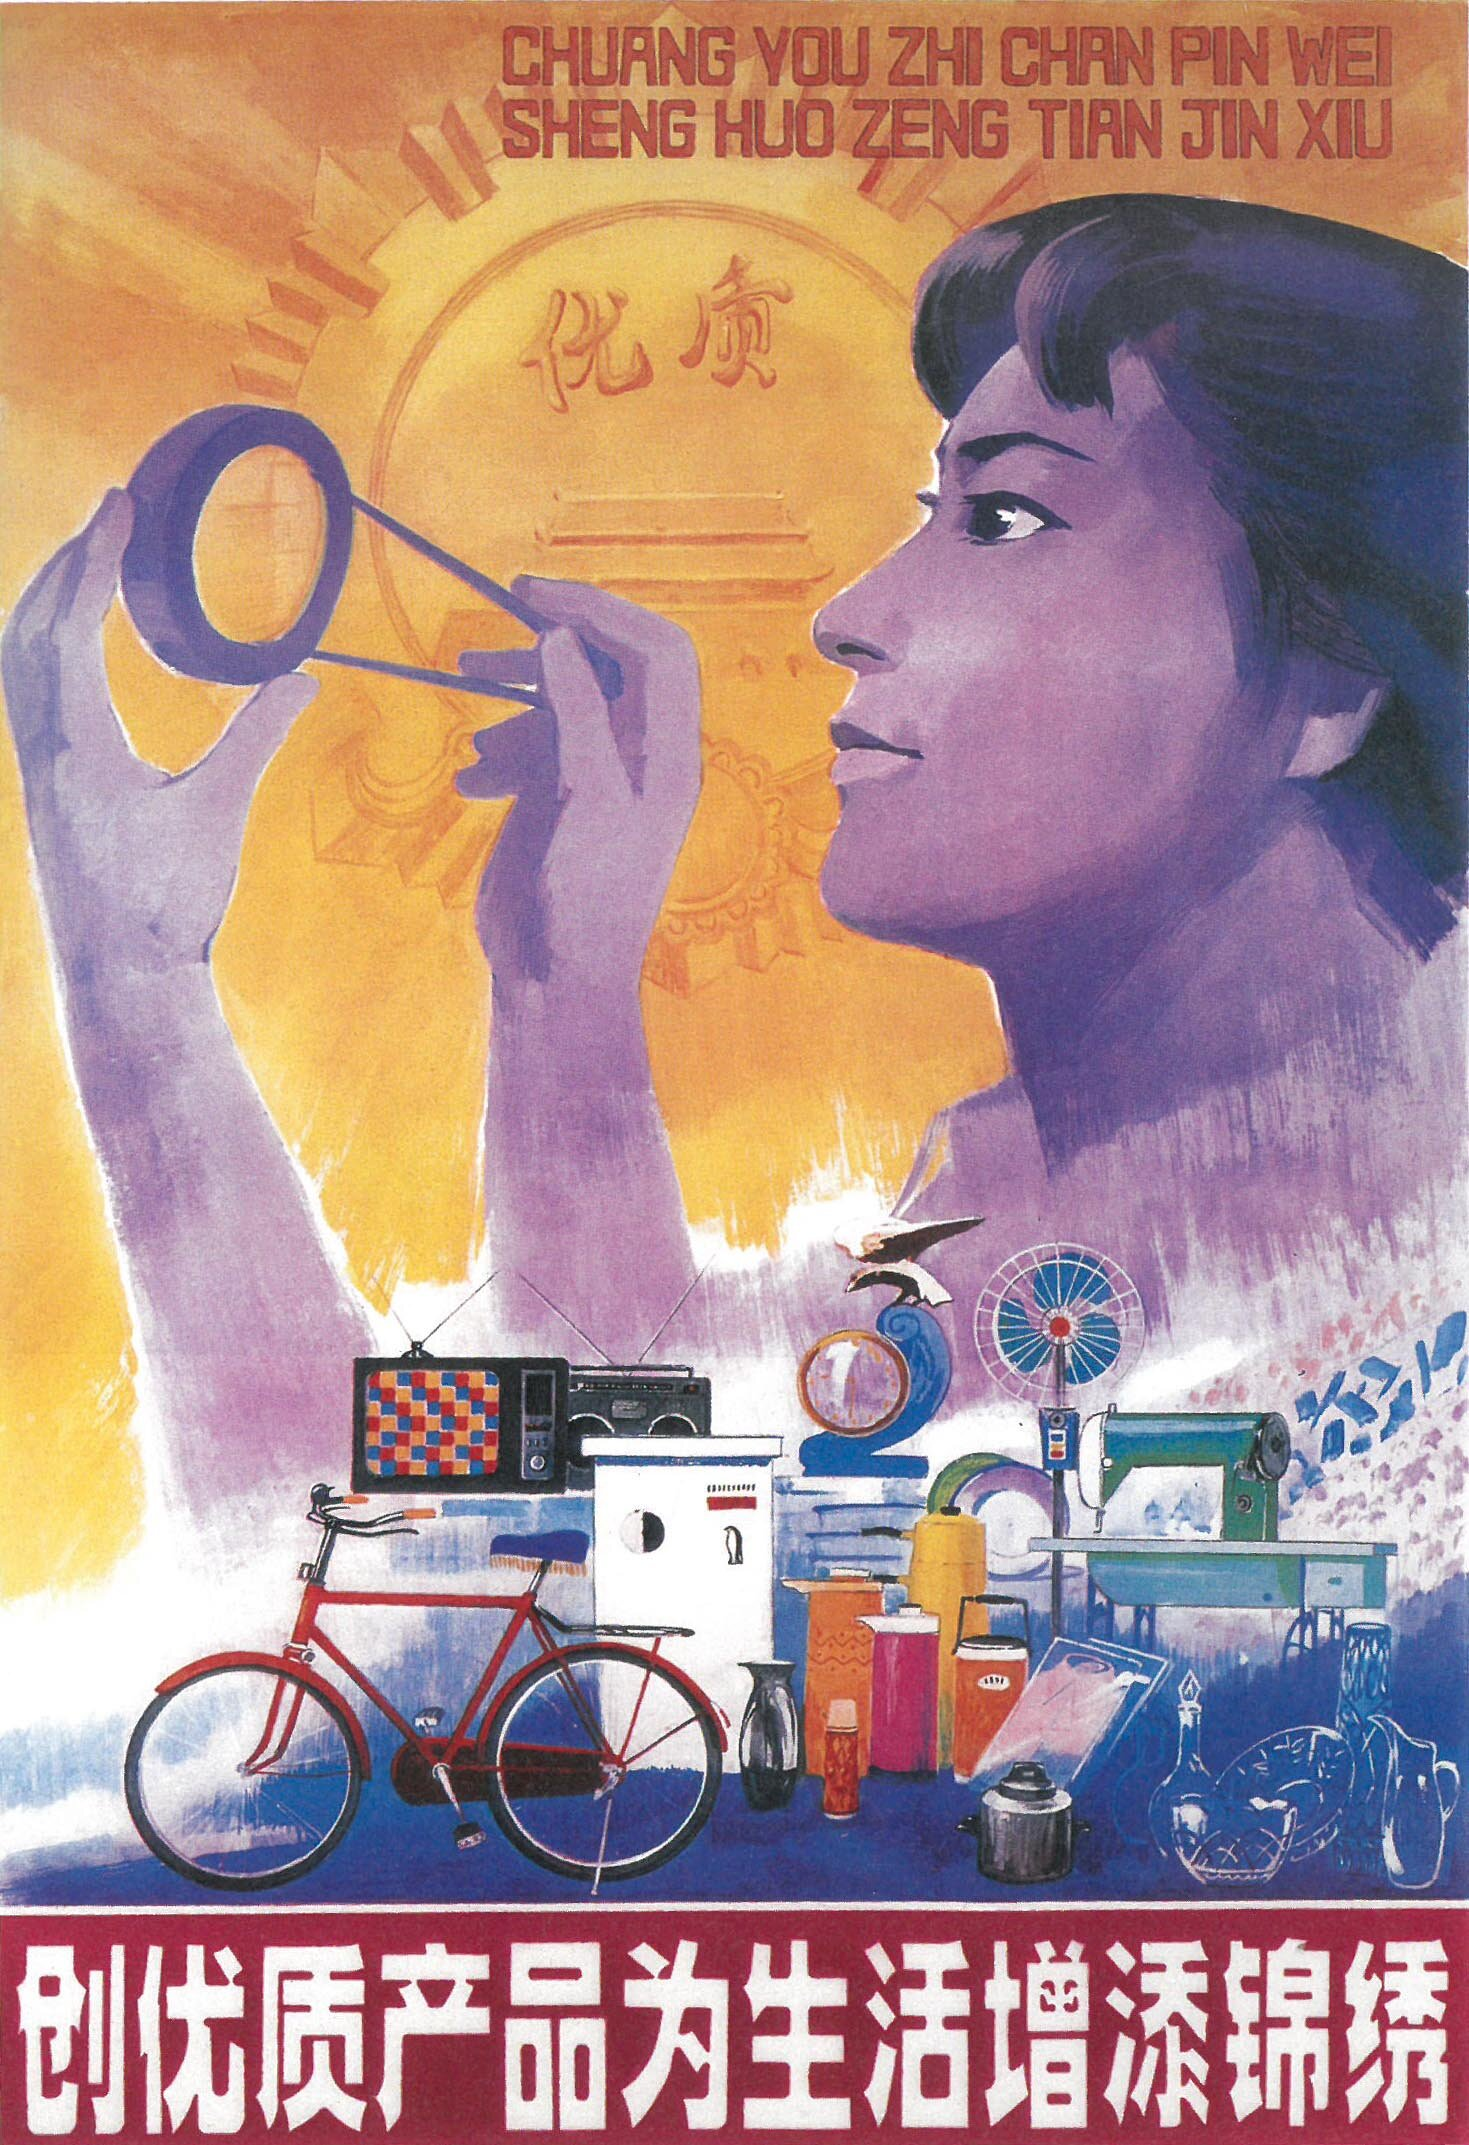 創優質產品為生活增添錦繡/Make good-quality products and brighten up life, 1960s